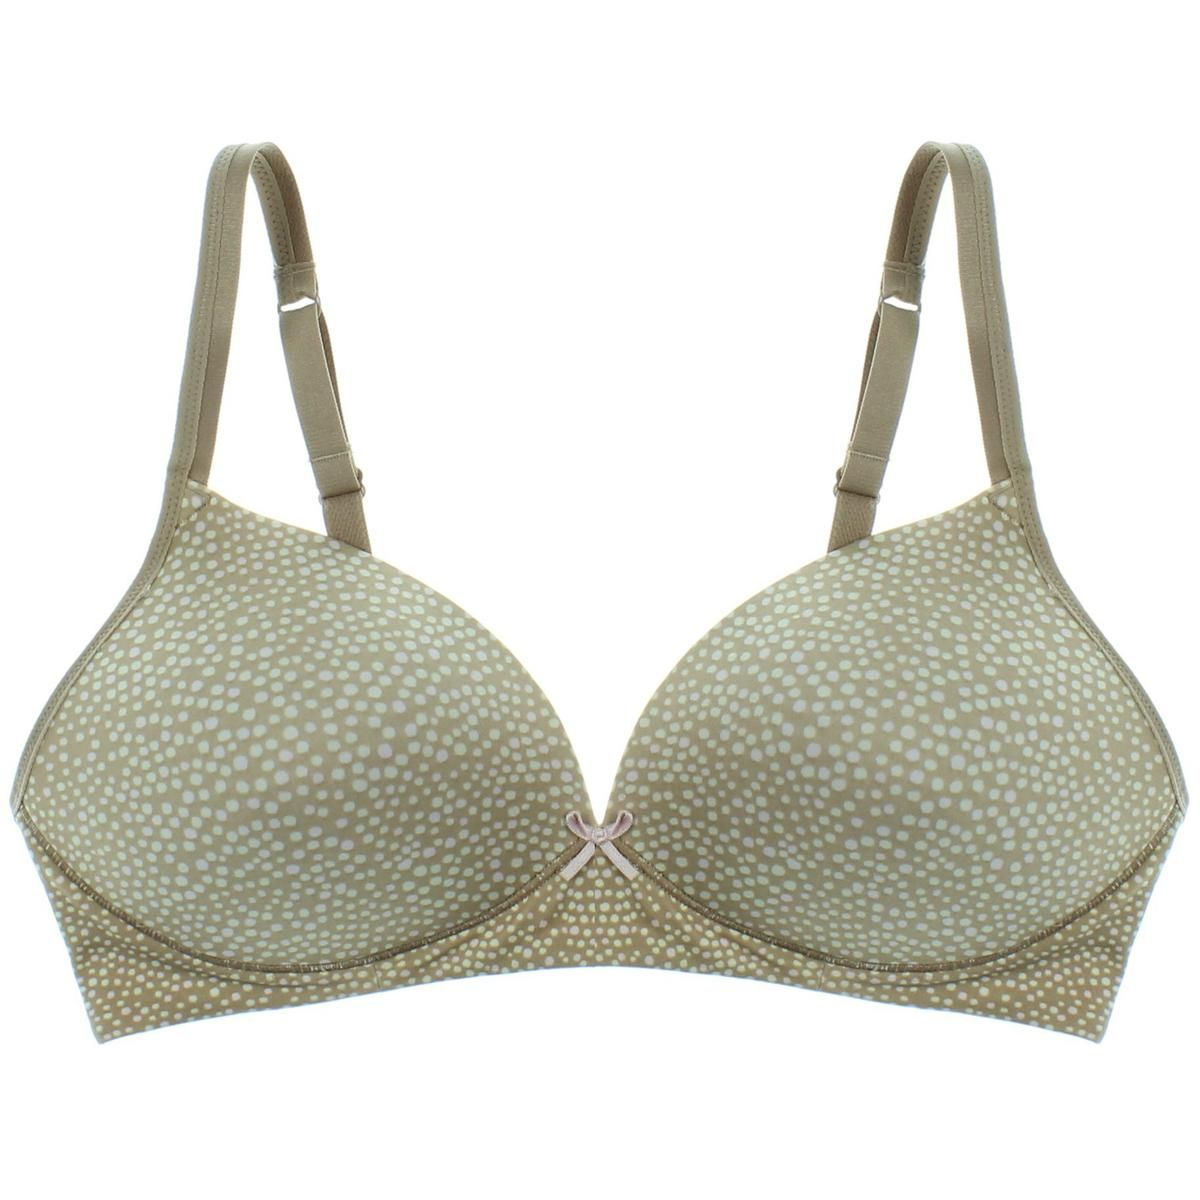 0e9511c683906 Women s elements of bliss wire-free with lift bra